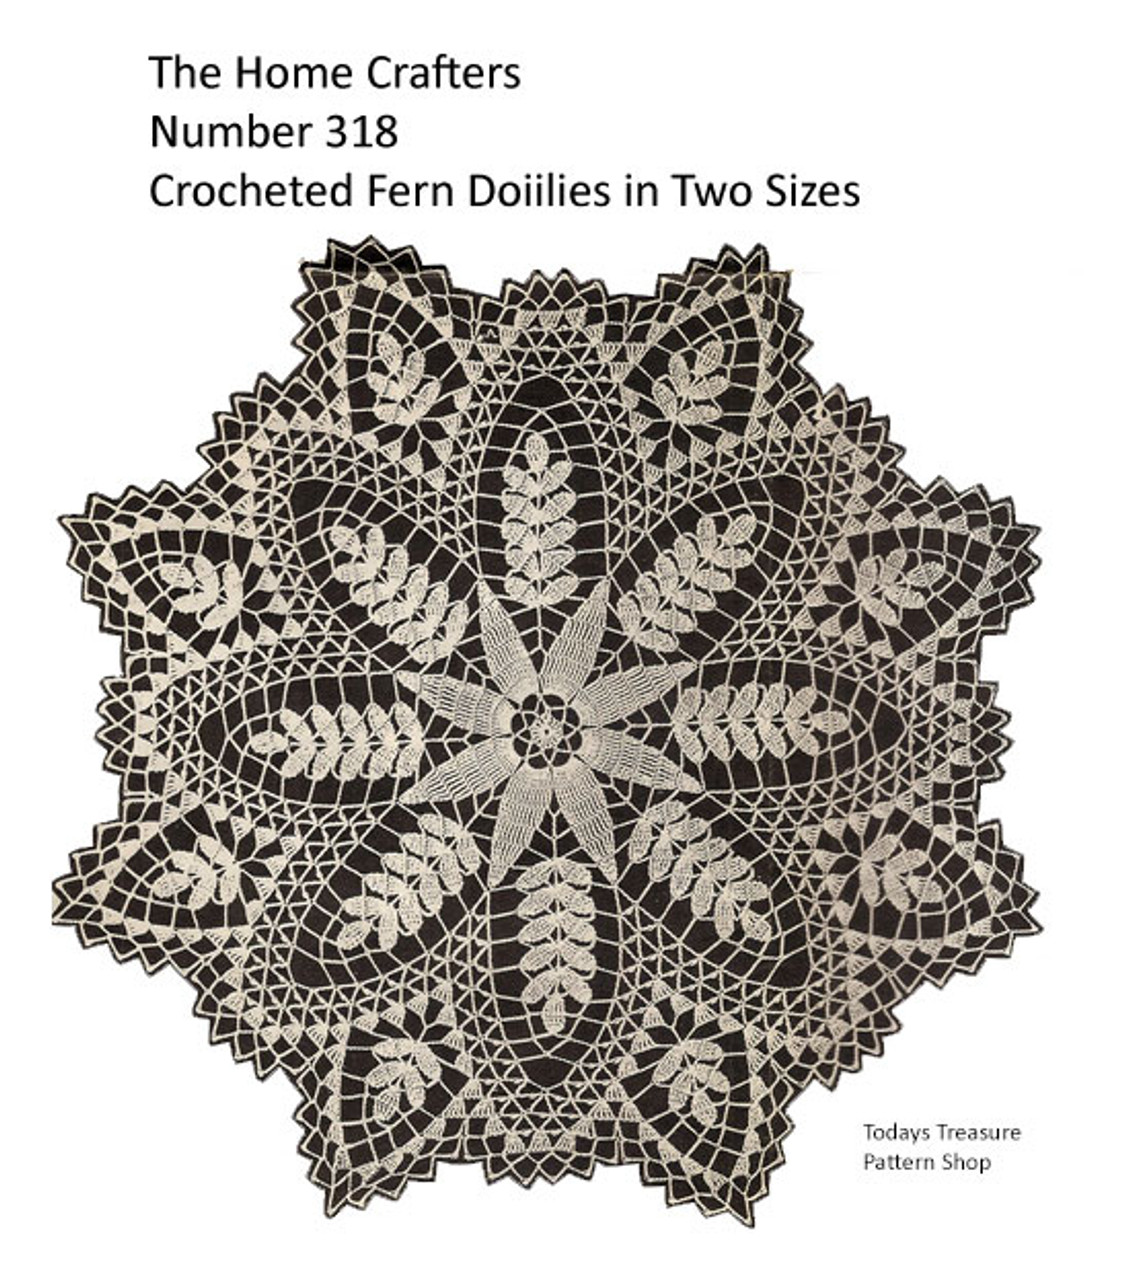 Vintage Fern Crocheted Doily Pattern, Homecrafters 318